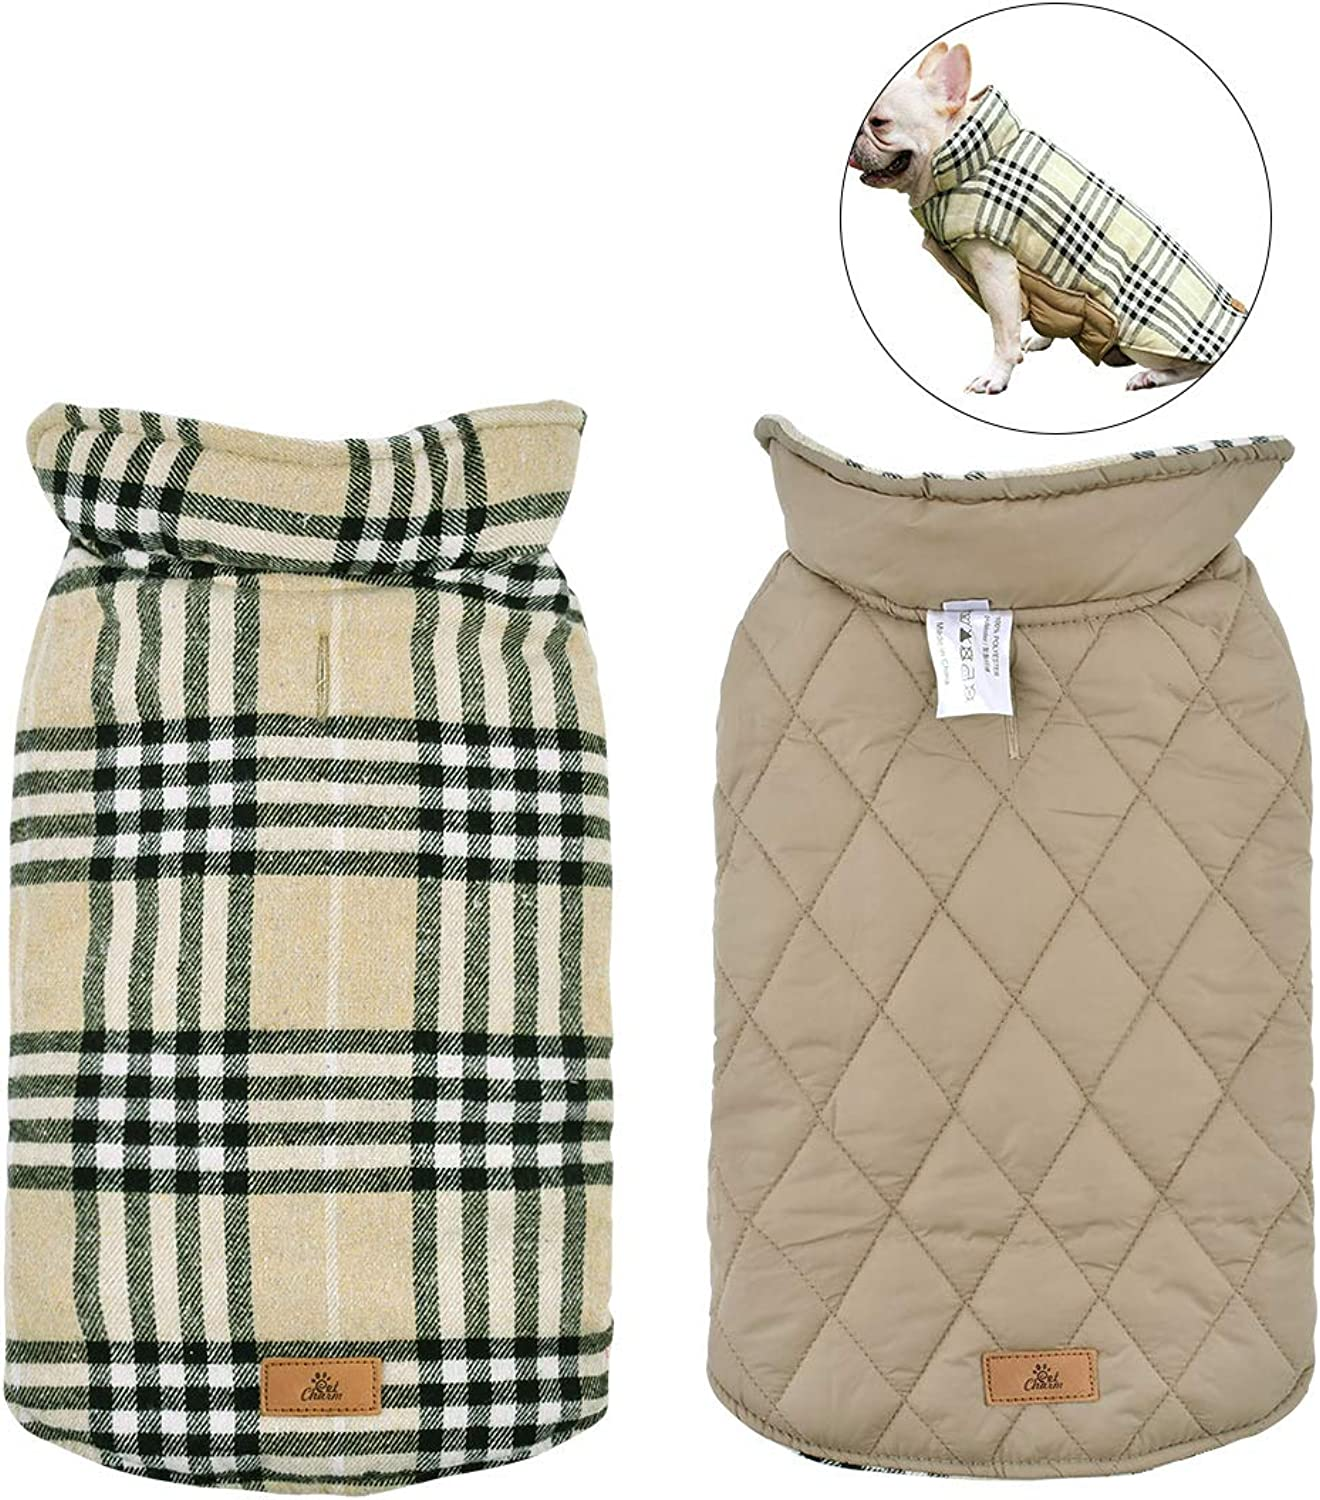 Dog Coat Waterproof Reversible British Style Plaid Pet Jacket Dog Sweaters Windproof Winter Vest Small Medium Large Dog Clothes with Furry Collar Beige L